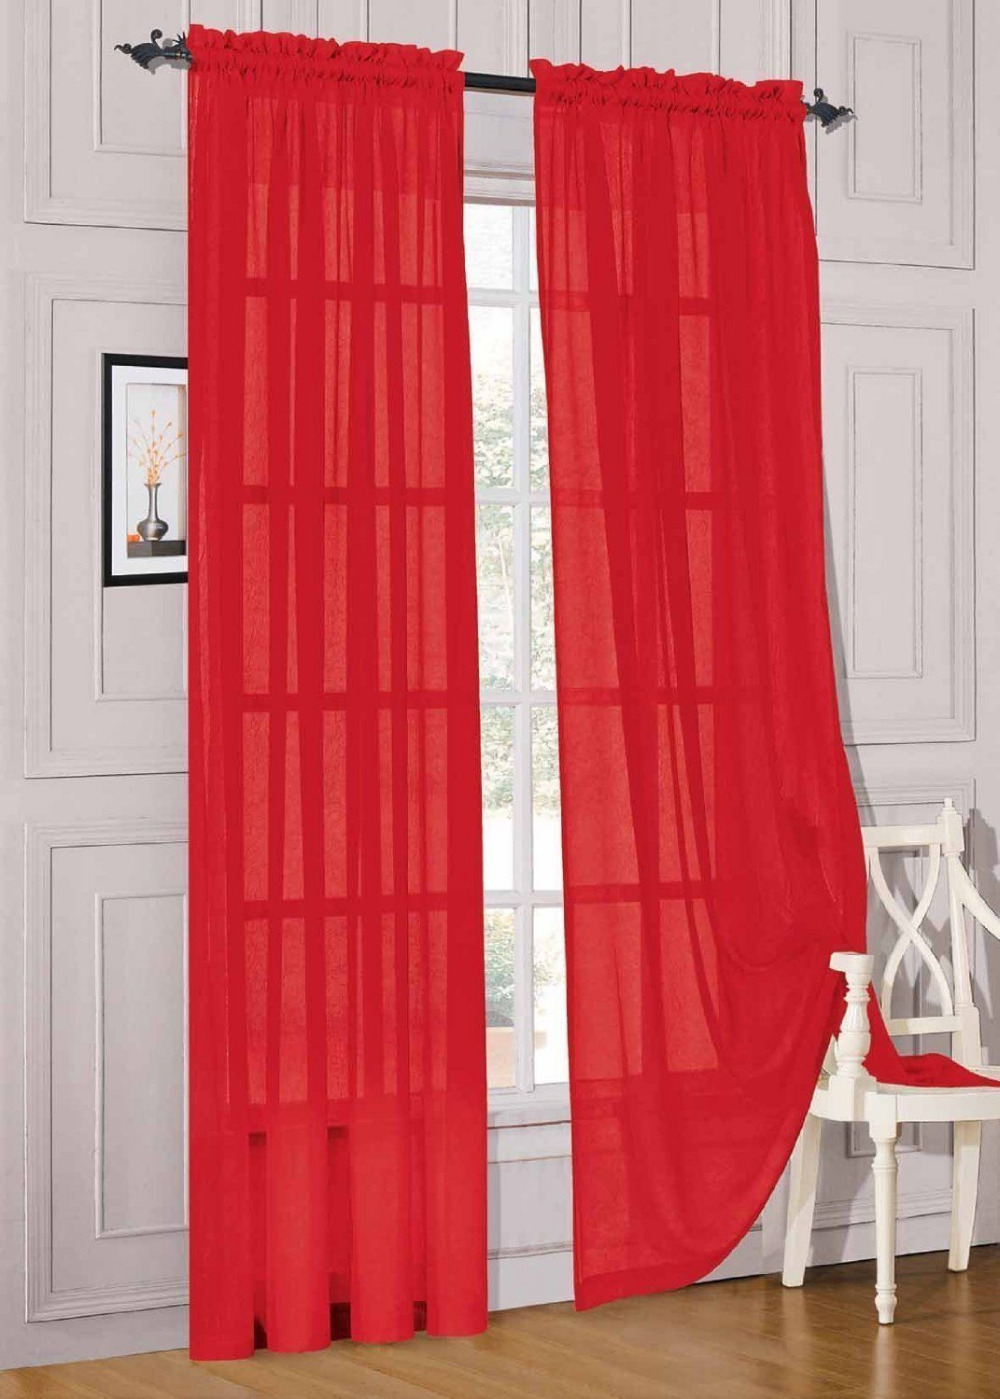 Cheap Voile Curtain Solid Window Curtain Drapes Curtains for Living Room Party Organdy Romantic Curtains 1pc